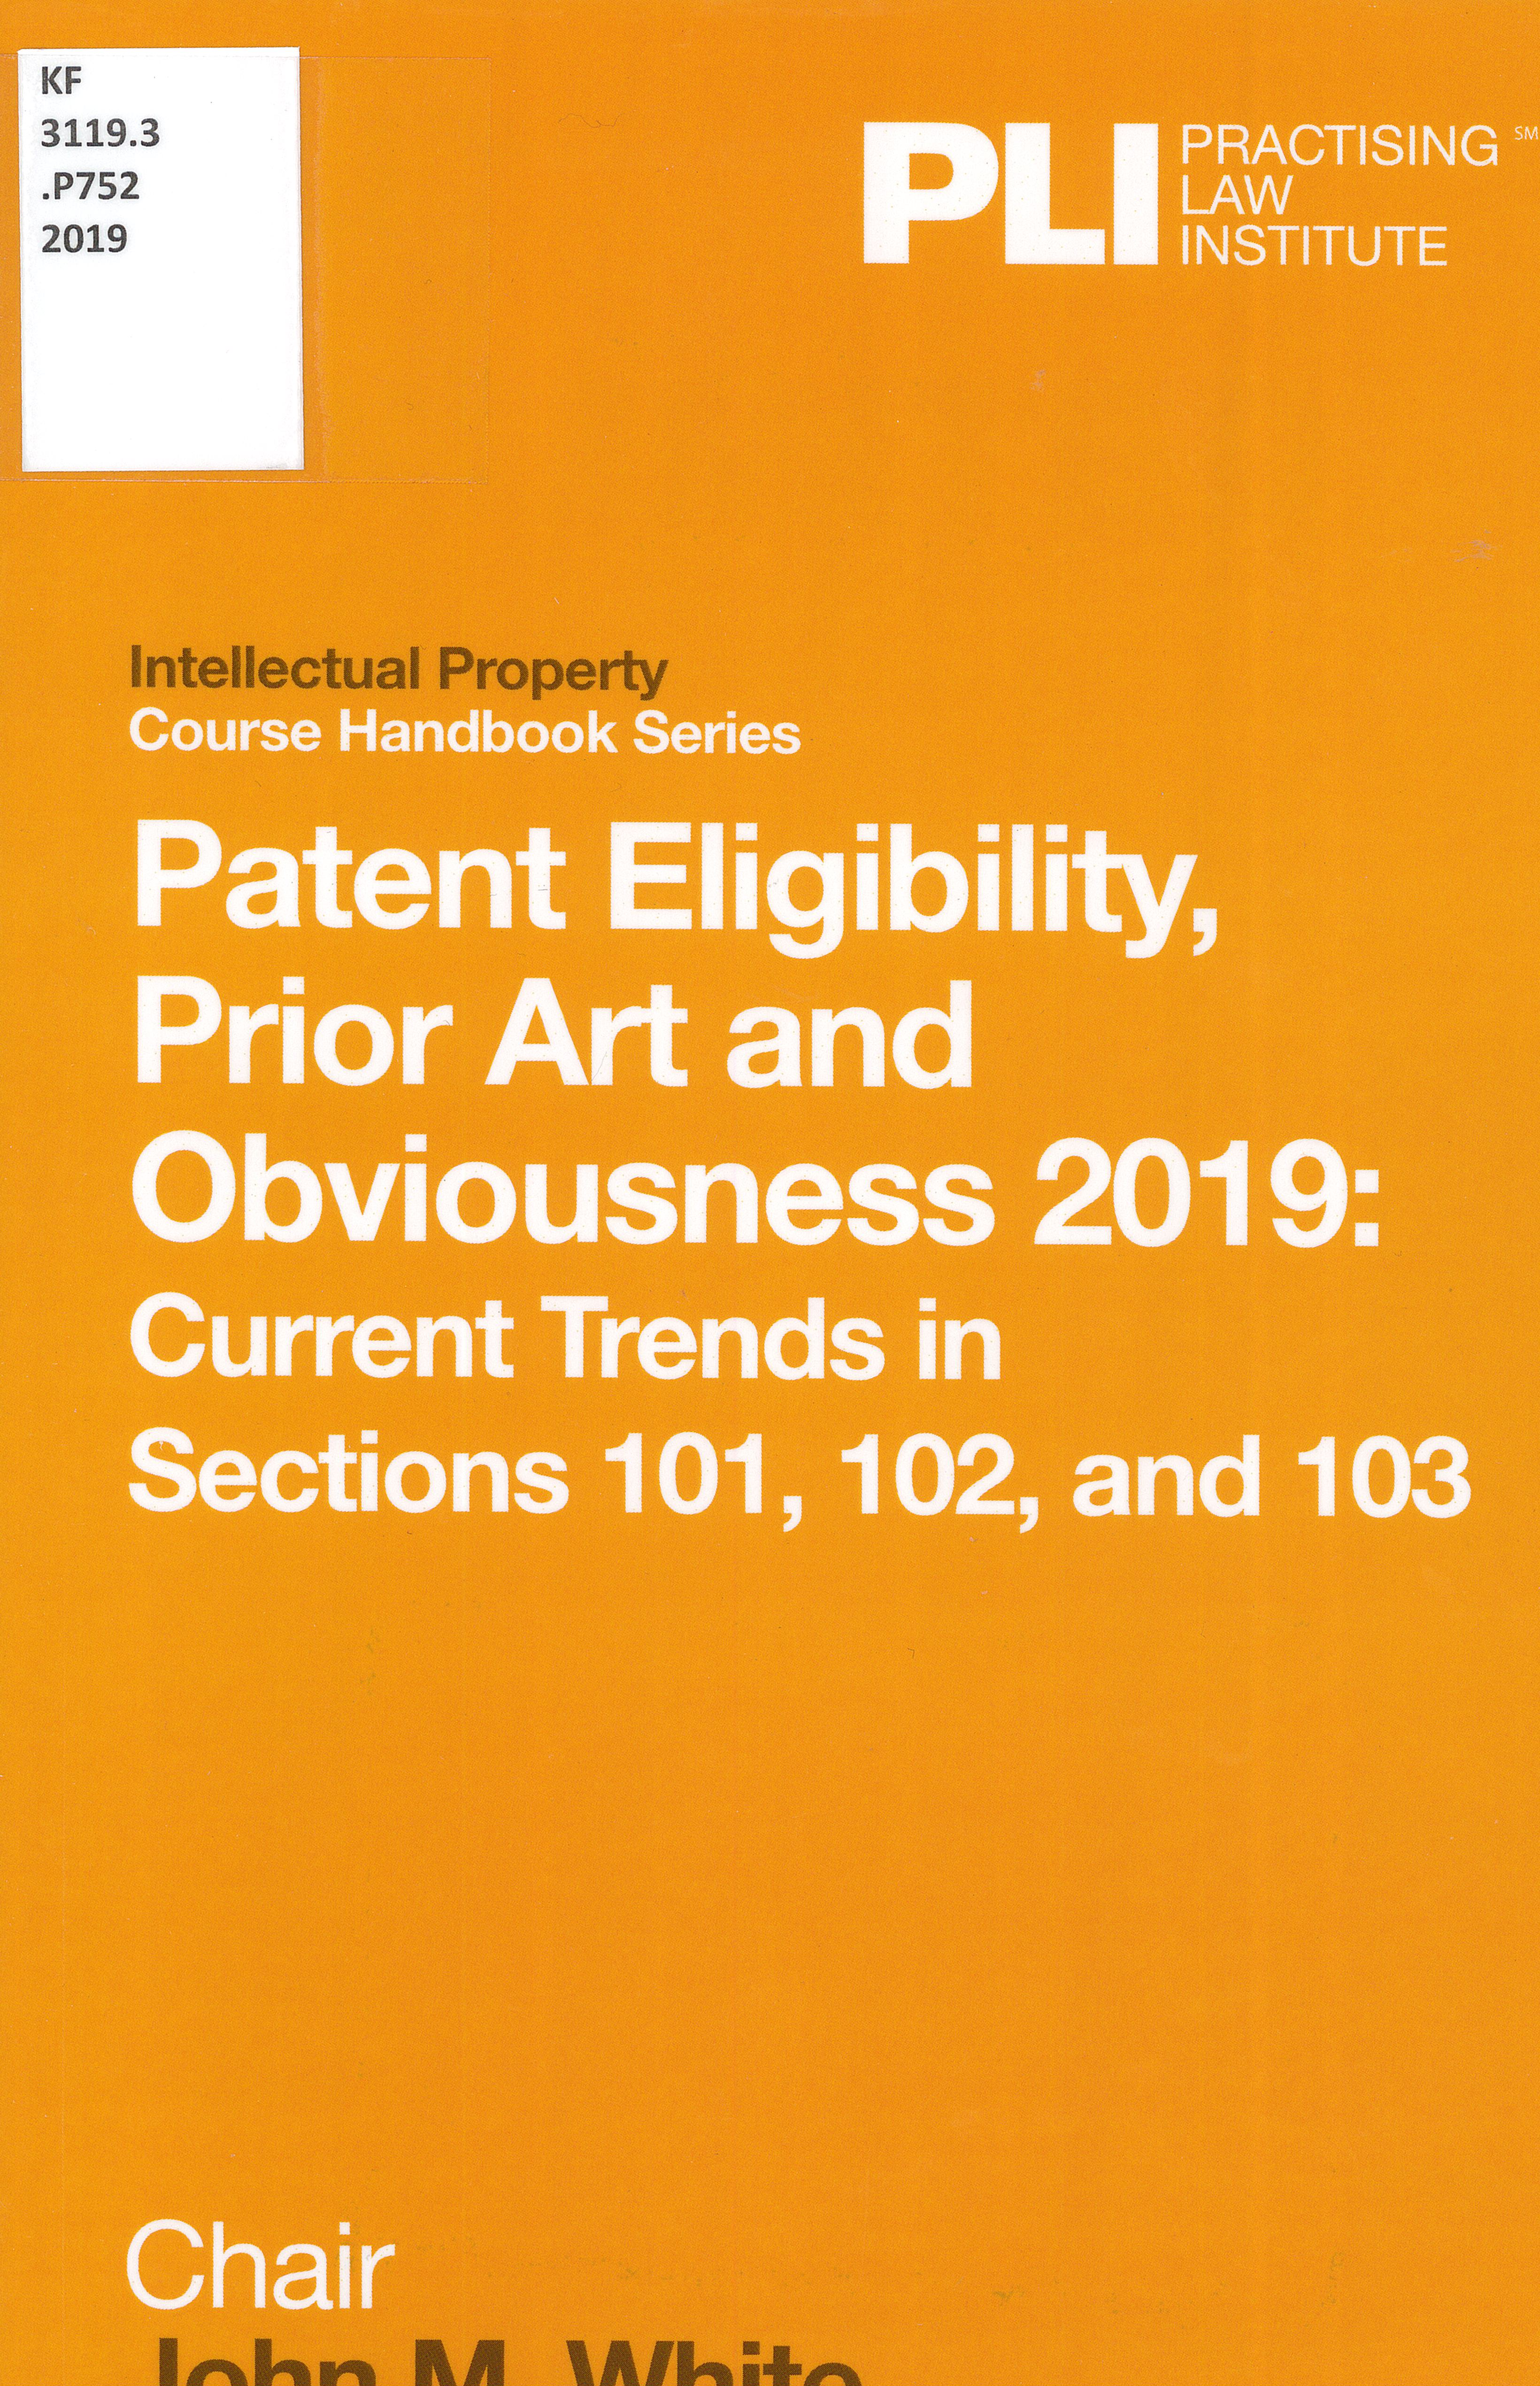 Patent eligibility, prior art and obviousness 2019 cover